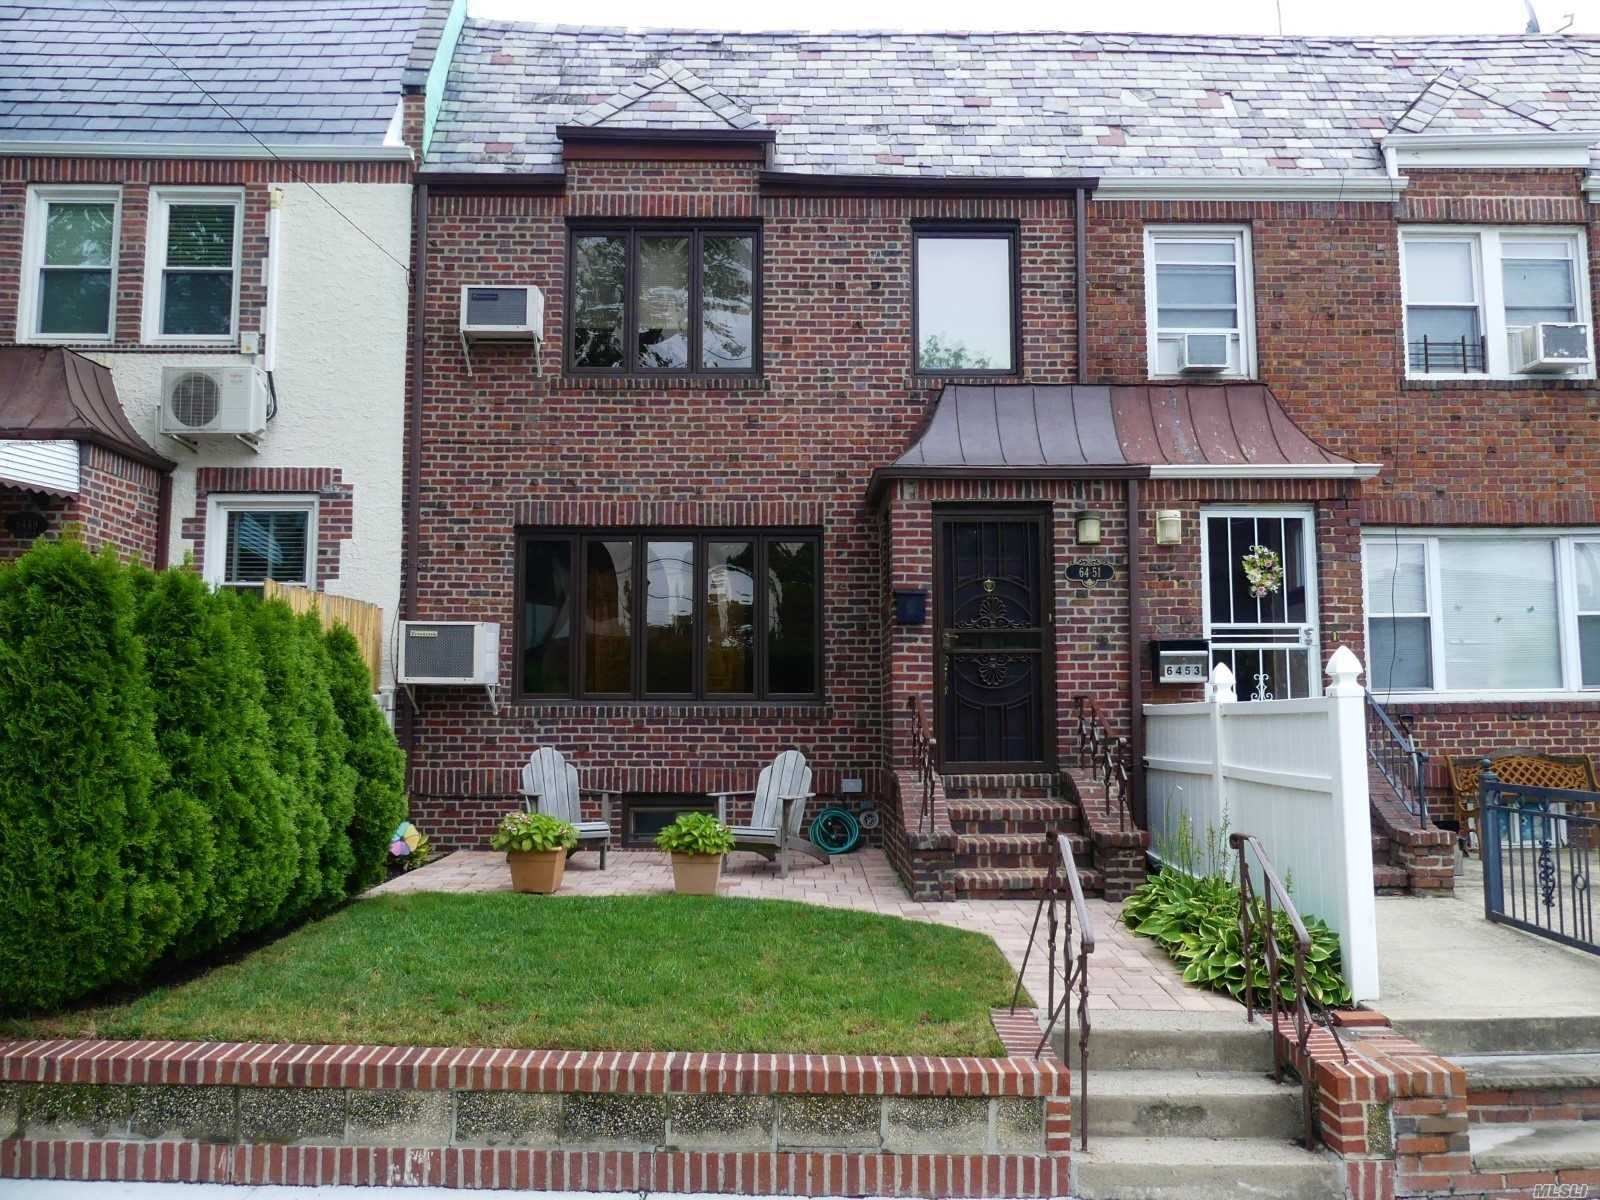 64-51 79th Street, Flushing, NY 11379 - MLS#: 3239648